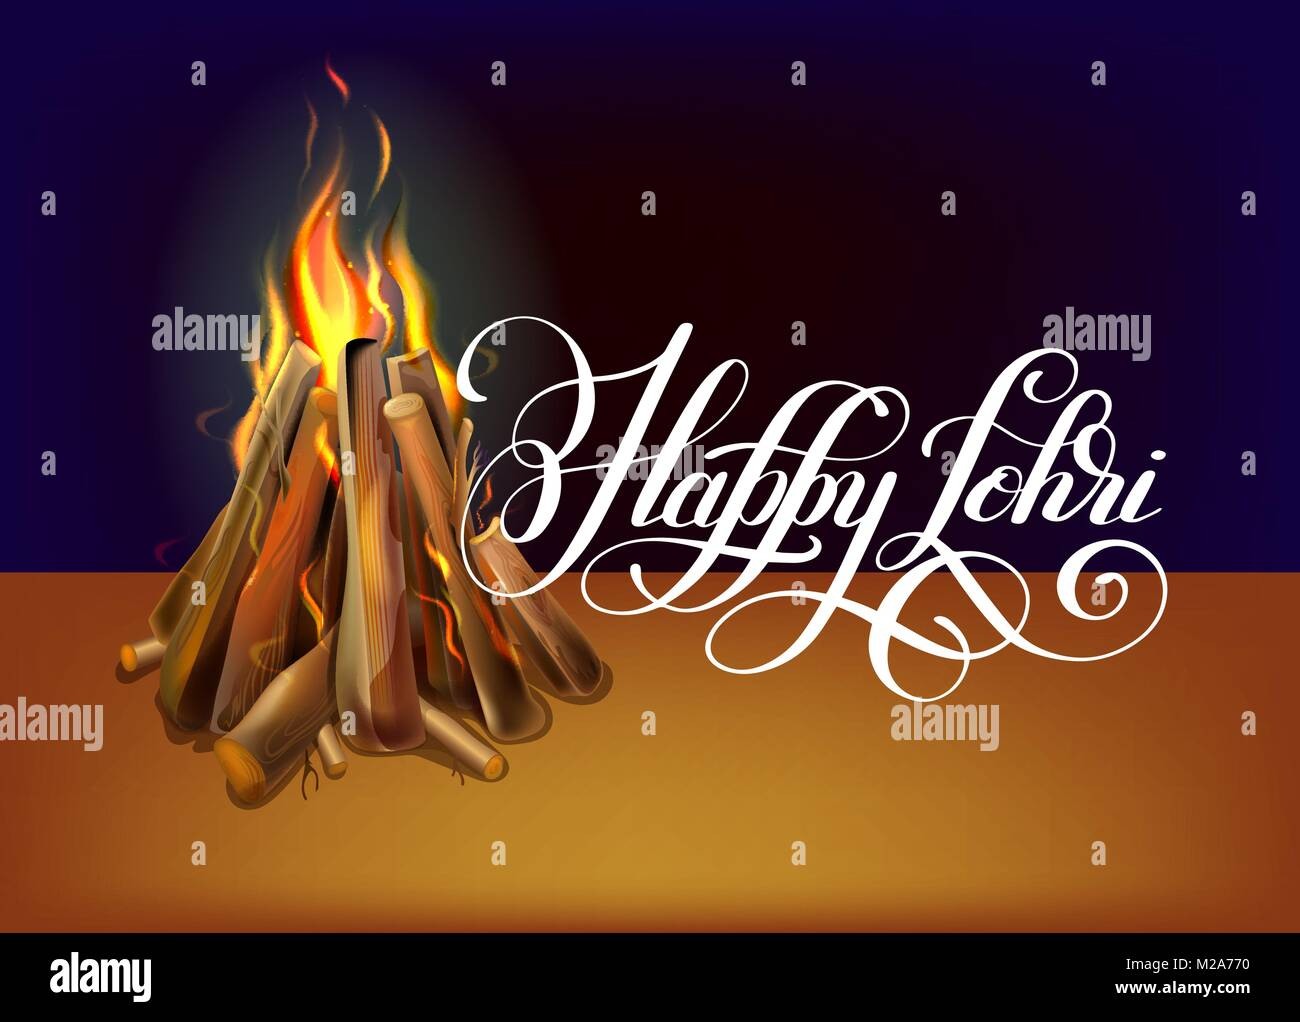 happy lohri hand lettering celebration design - Stock Vector